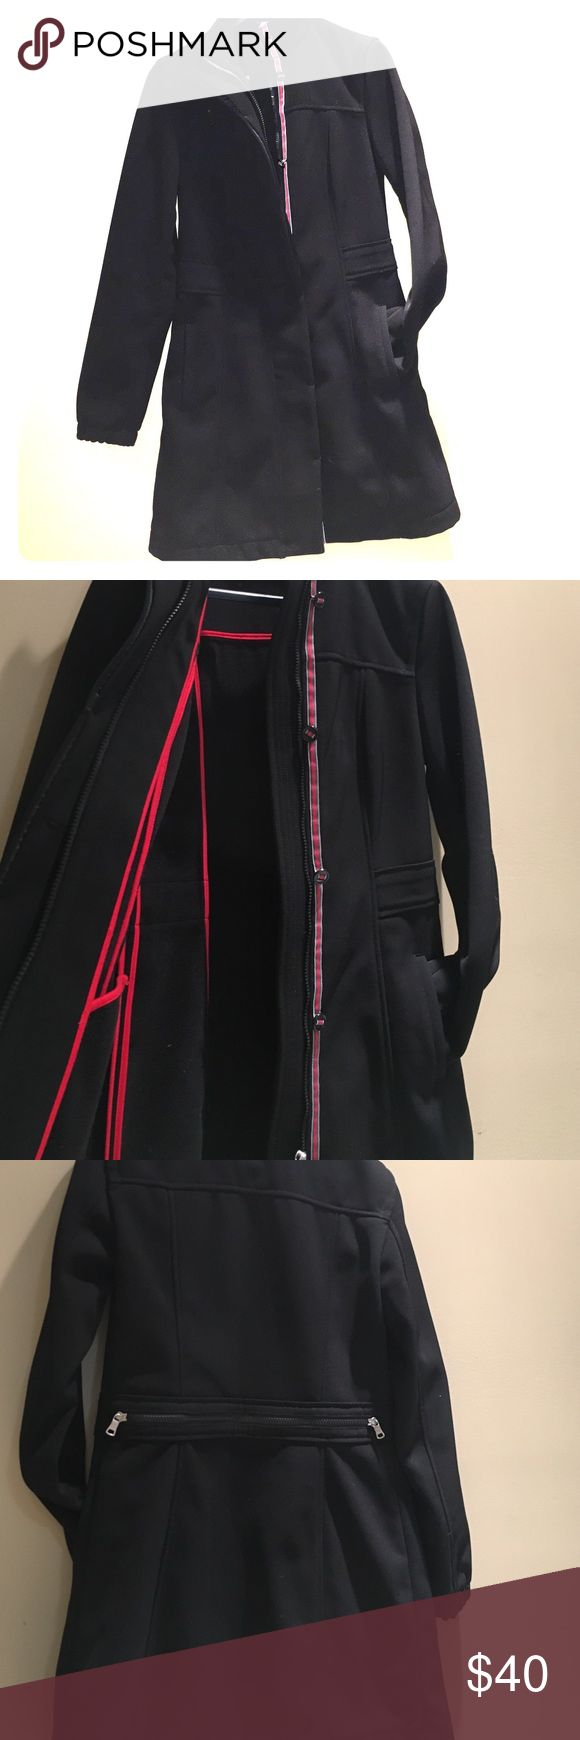 Armani Exchange Coat Black knee length coat. Red grey and white details trip with buttons along zipper. Zipper detail on back. Inside the jacket red lines run along the seams for added color, perfect wow factor when you take off the coat! A/X Armani Exchange Jackets & Coats